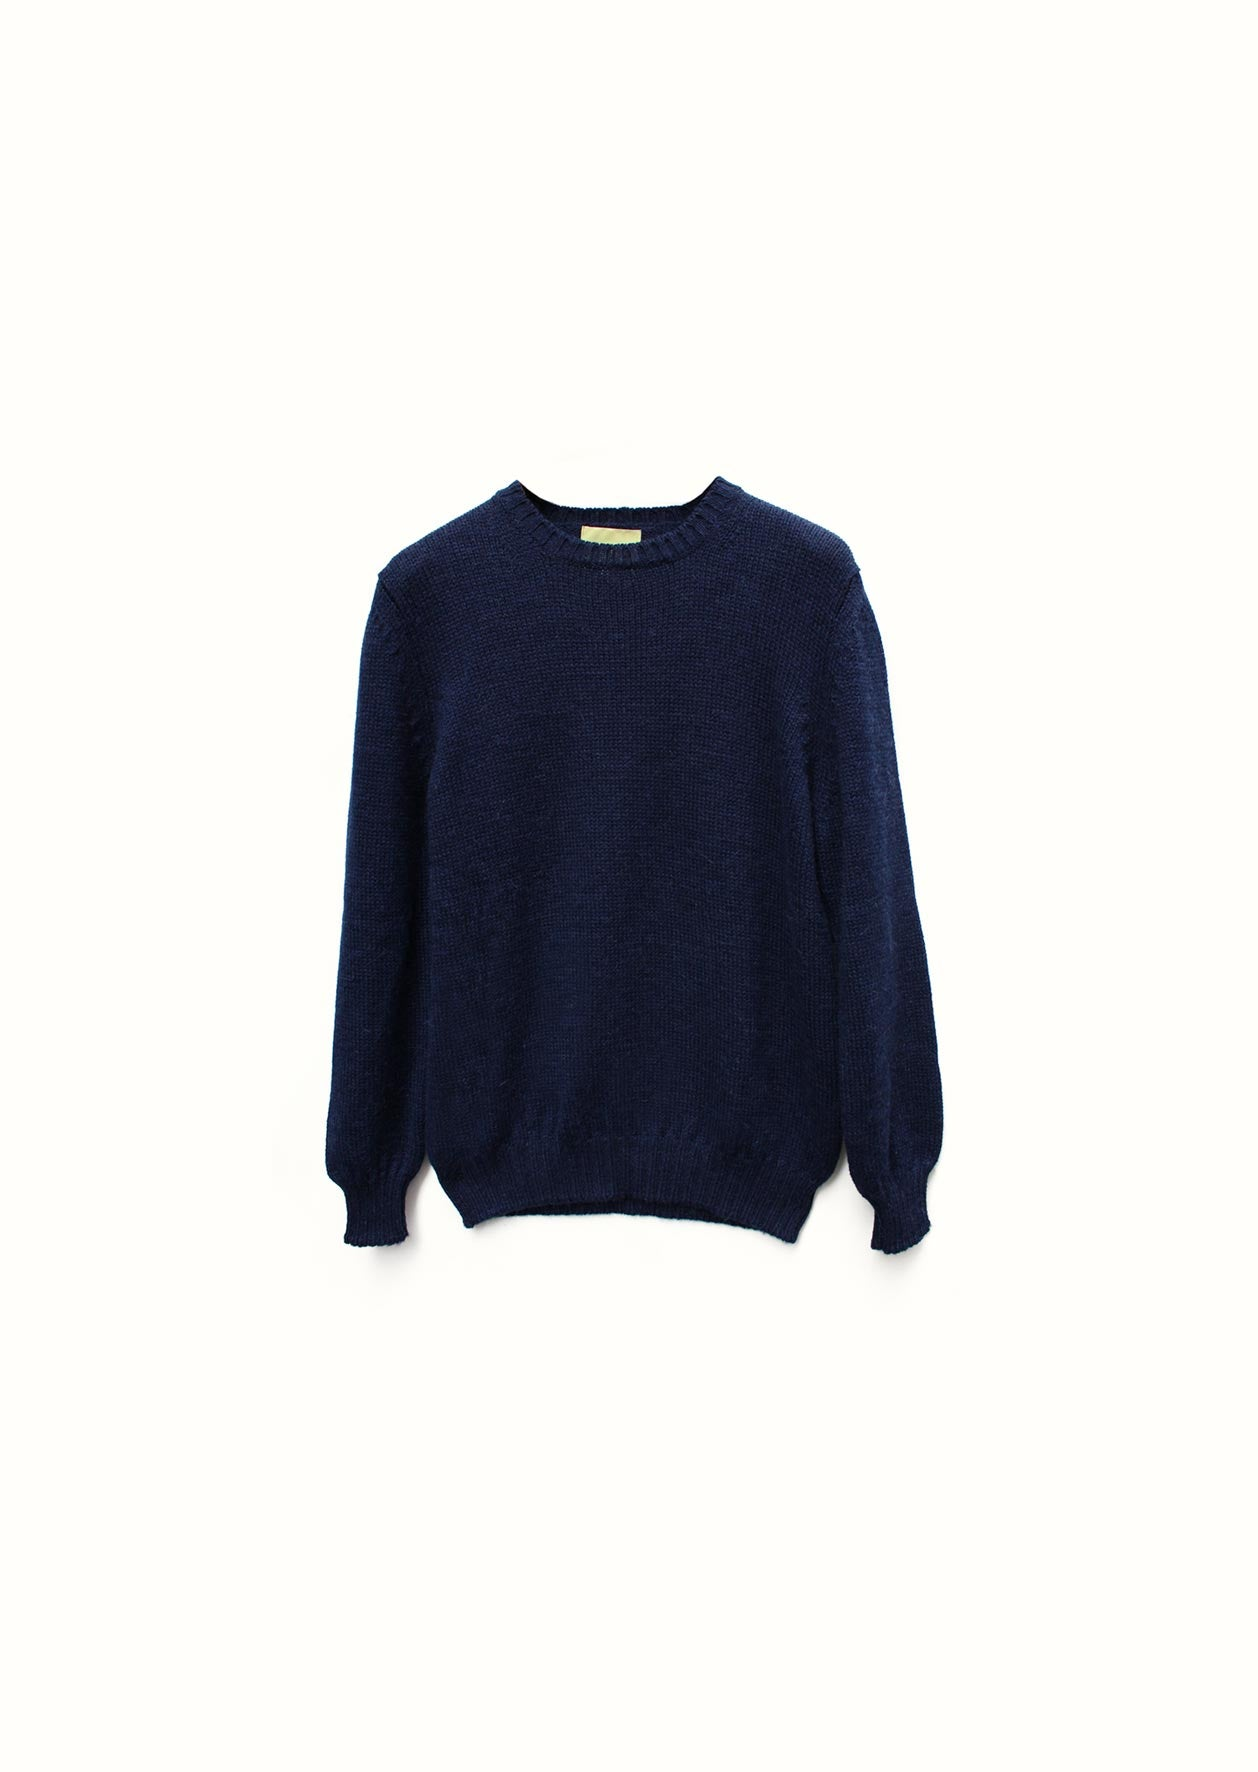 Crew neck sweater - Peruvian superfine alpaca blend - Ink blue